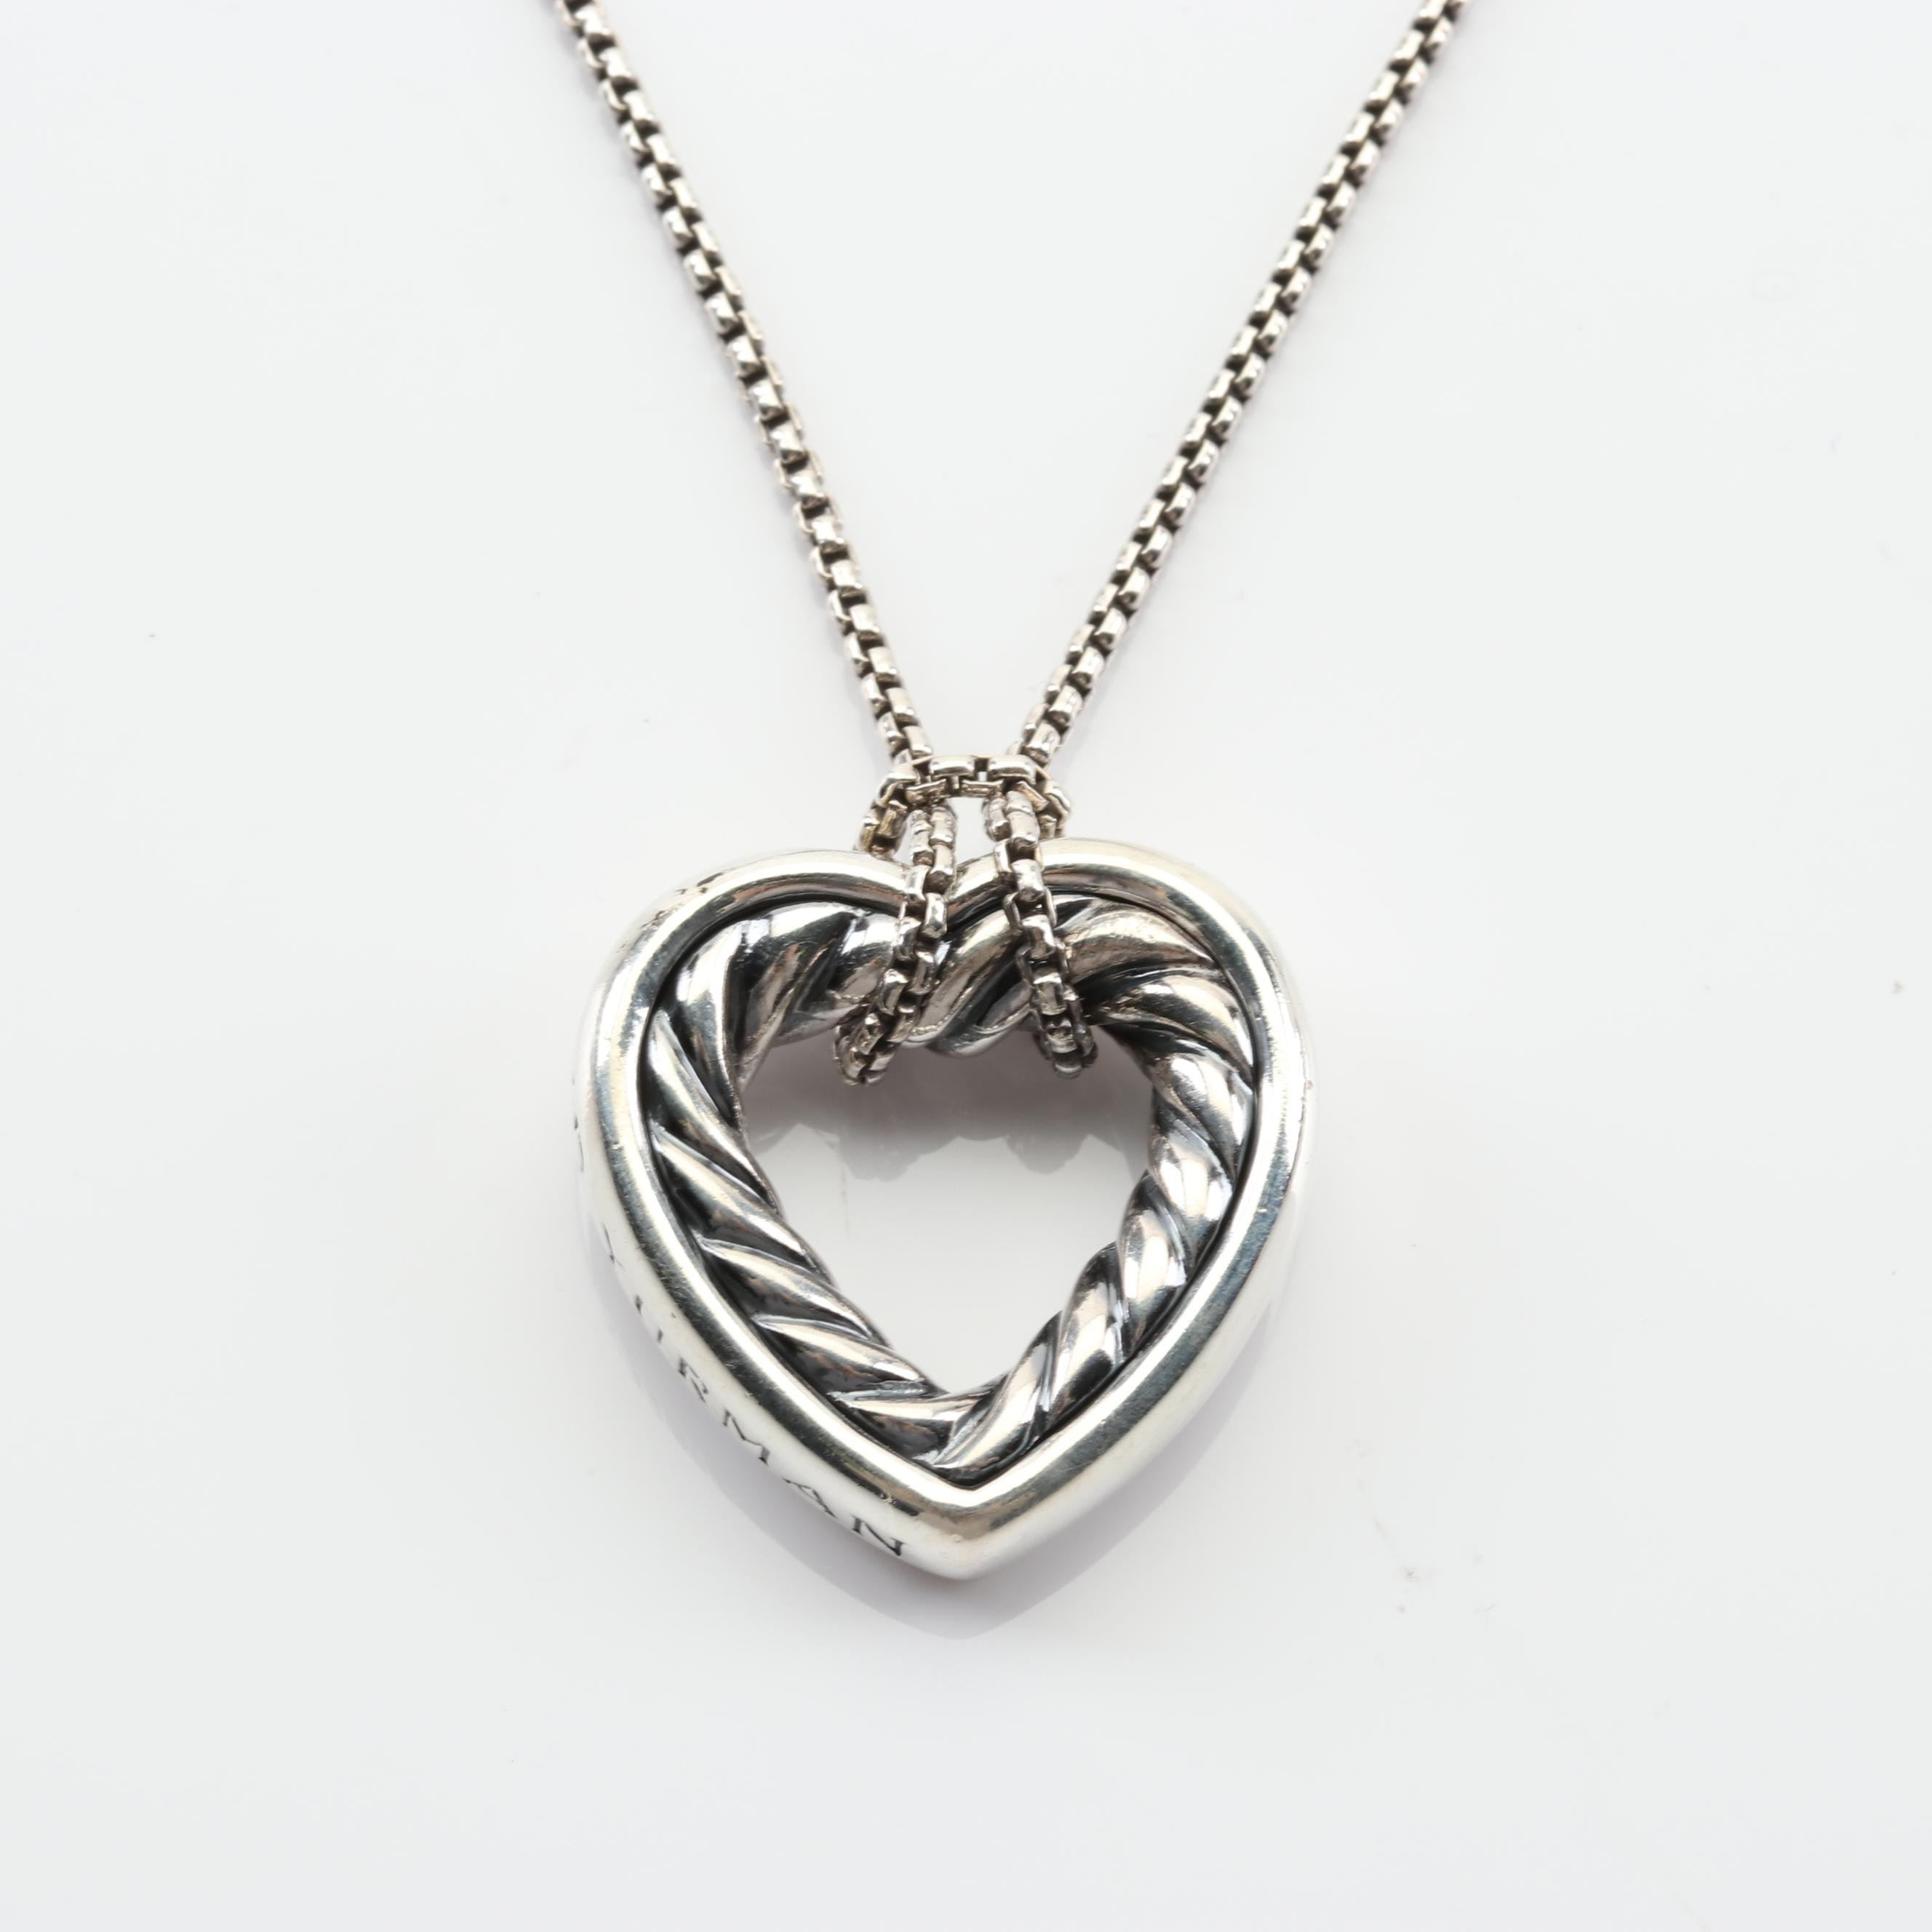 David Yurman Sterling Silver Cable Heart Necklace with 18K Yellow Gold Accents